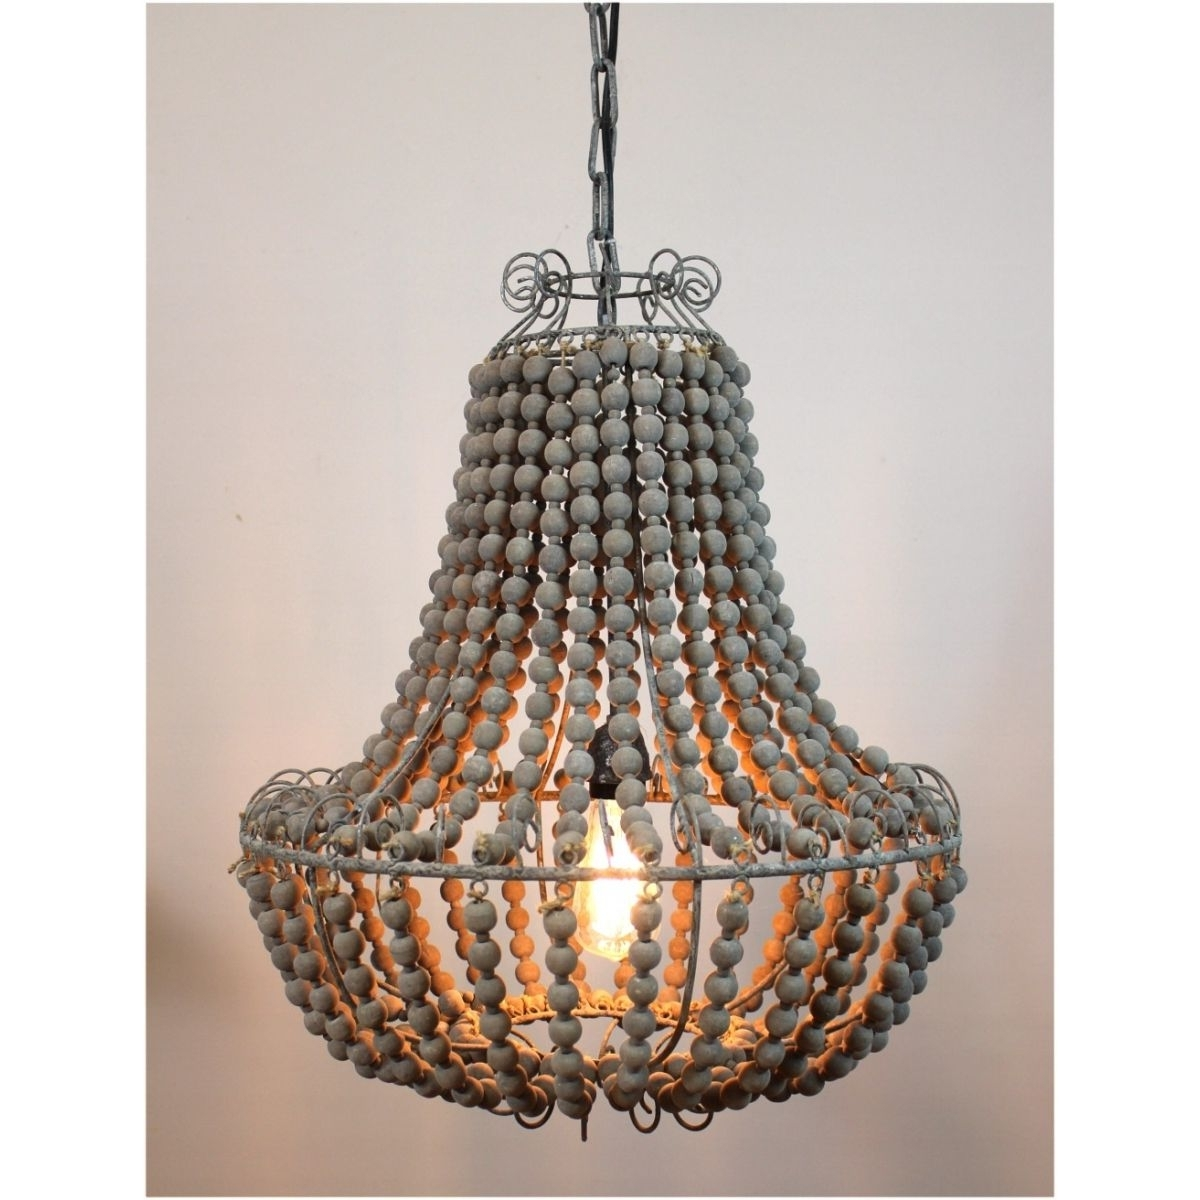 Newest Vintage Style Chandeliers Pertaining To Aged Wooden Beaded Big Chandelier Hand Made Lighting Fixture Ceiling (View 11 of 20)